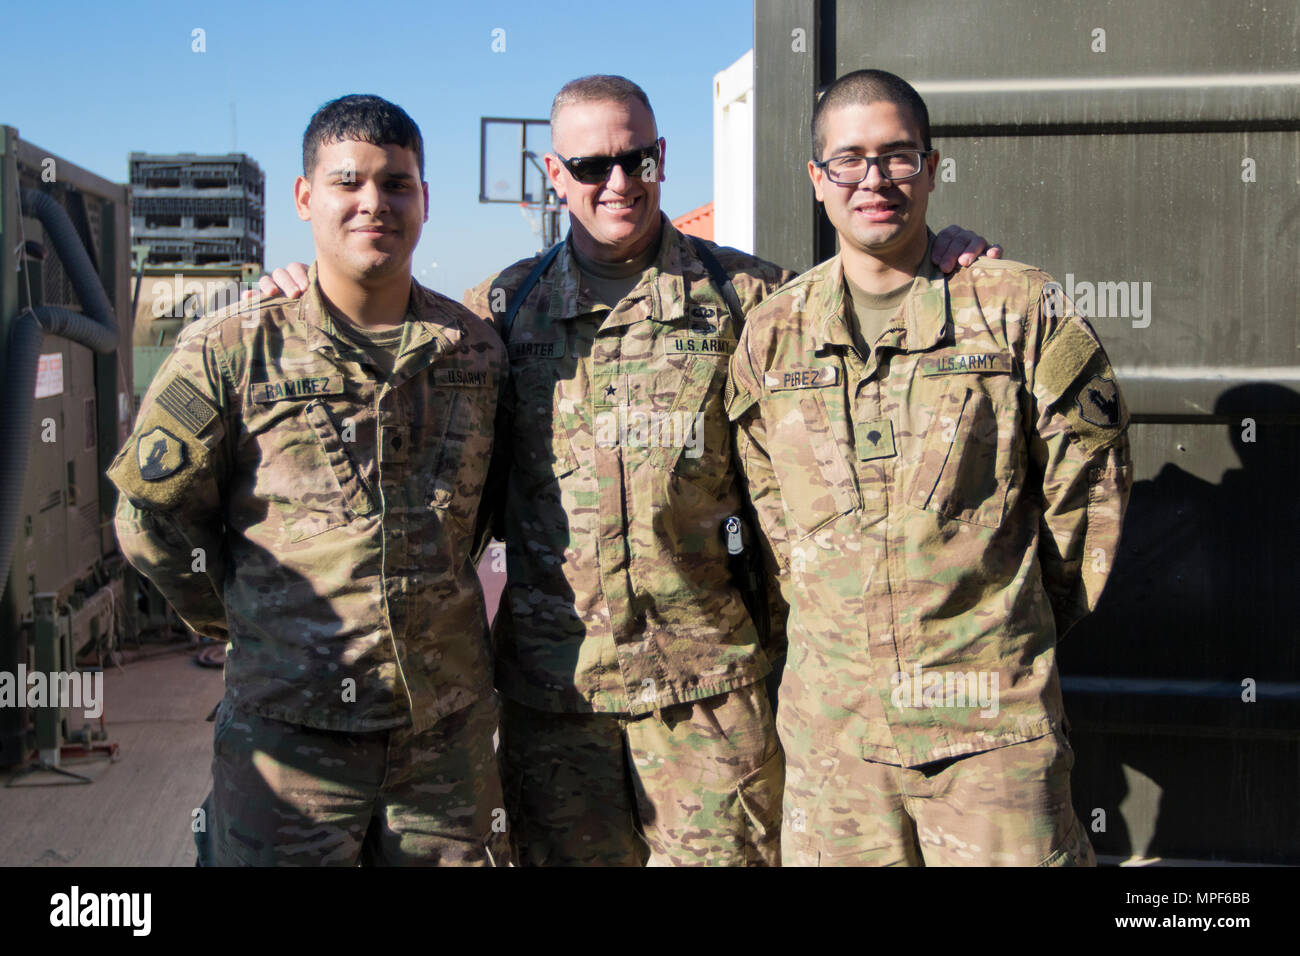 Brig. Gen. Robert D. Harter, deputy commanding general of the 1st Sustainment Command (Theater) / commanding general of the 316th Sustainment Command (Expeditionary), (center), poses with Spc. Brian Ramirez, (left), and Spc. Jose Perez, (right), both mortuary affairs specialists with the 246th Quartermaster Company (Mortuary Affairs), an U.S. Army Reserve unit based out of Mayaguez, Puerto Rico, in Erbil, Iraq on February 3, 2017. (U.S. Army photo by Staff Sgt. Dalton Smith) - Stock Image